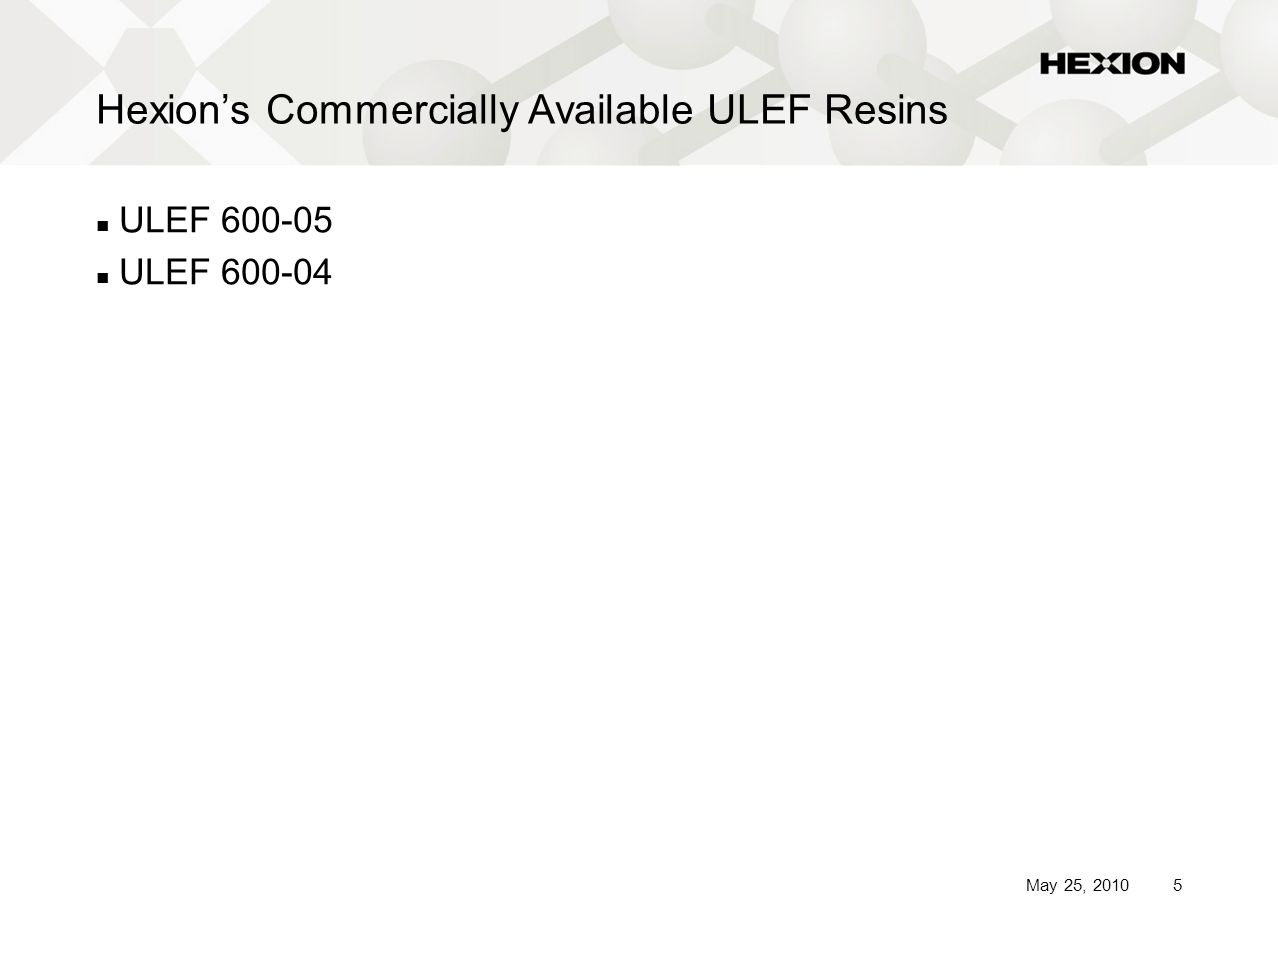 5May 25, 2010 Hexion's Commercially Available ULEF Resins ULEF 600-05 ULEF 600-04